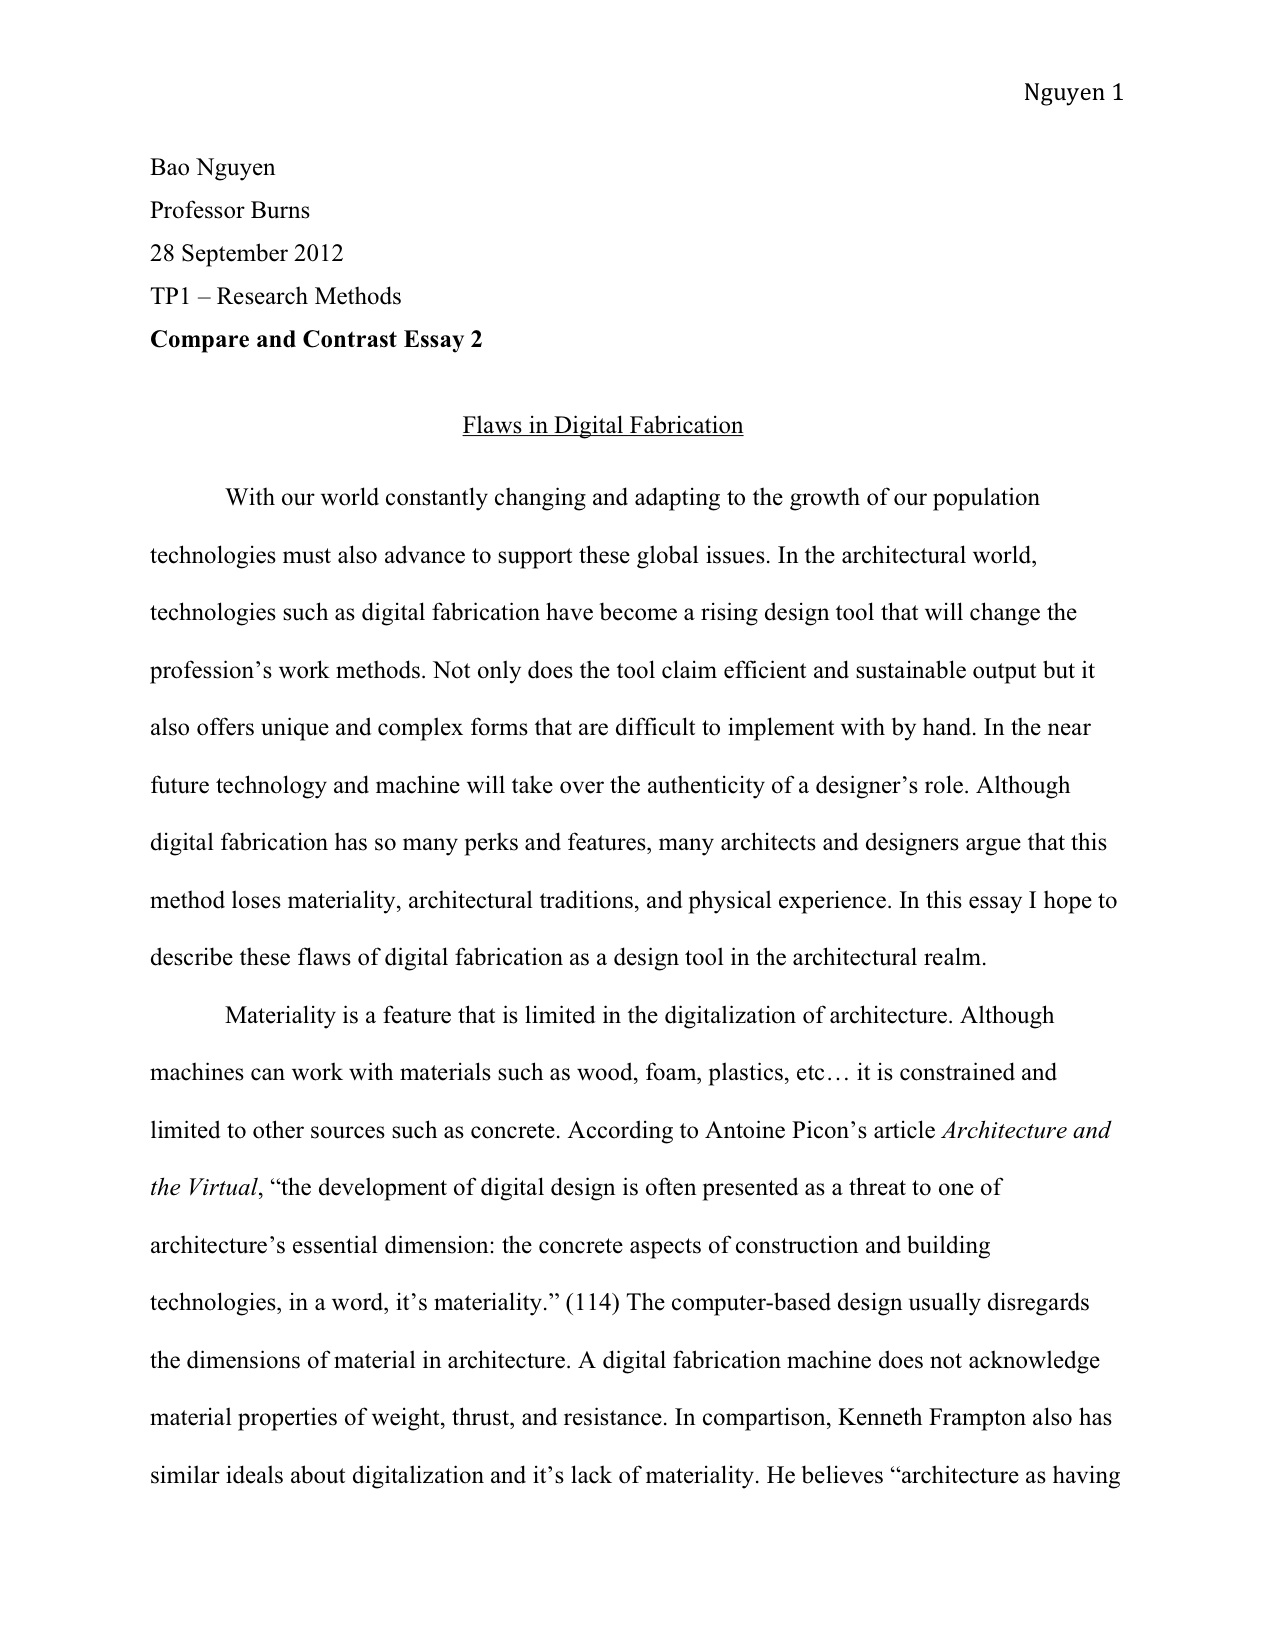 005 How To Write An Essay Example Tp1 3 Shocking In Mla Format 2018 Introduction For College Paper Apa Full